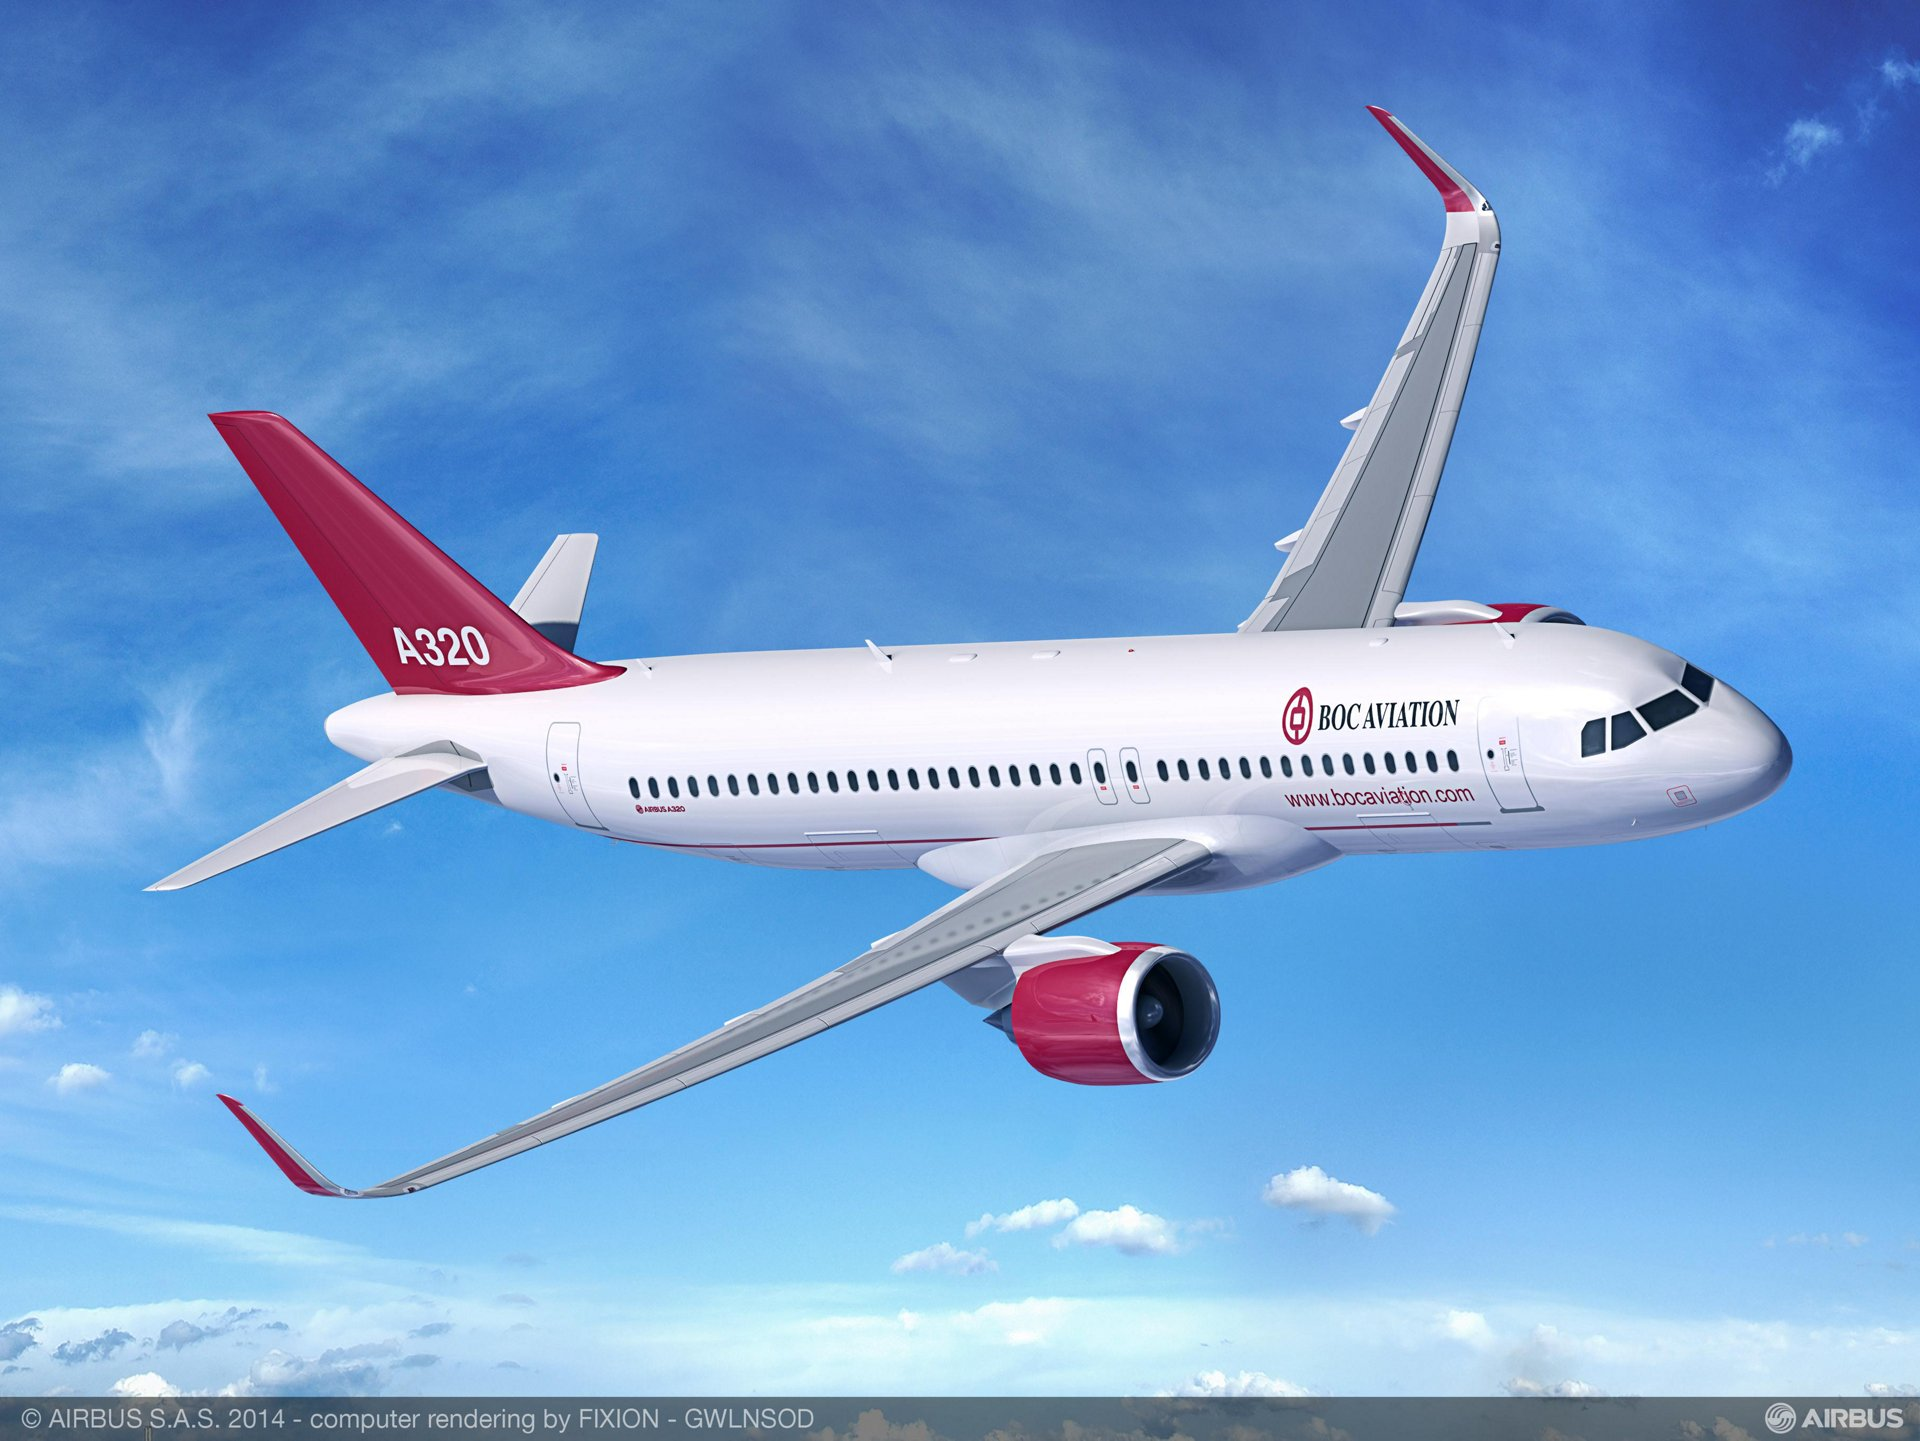 Of the 20 A320neo aircraft covered in BOC Aviation Limited's new firm order, 12 will be leased to Colombia's Avianca Airlines